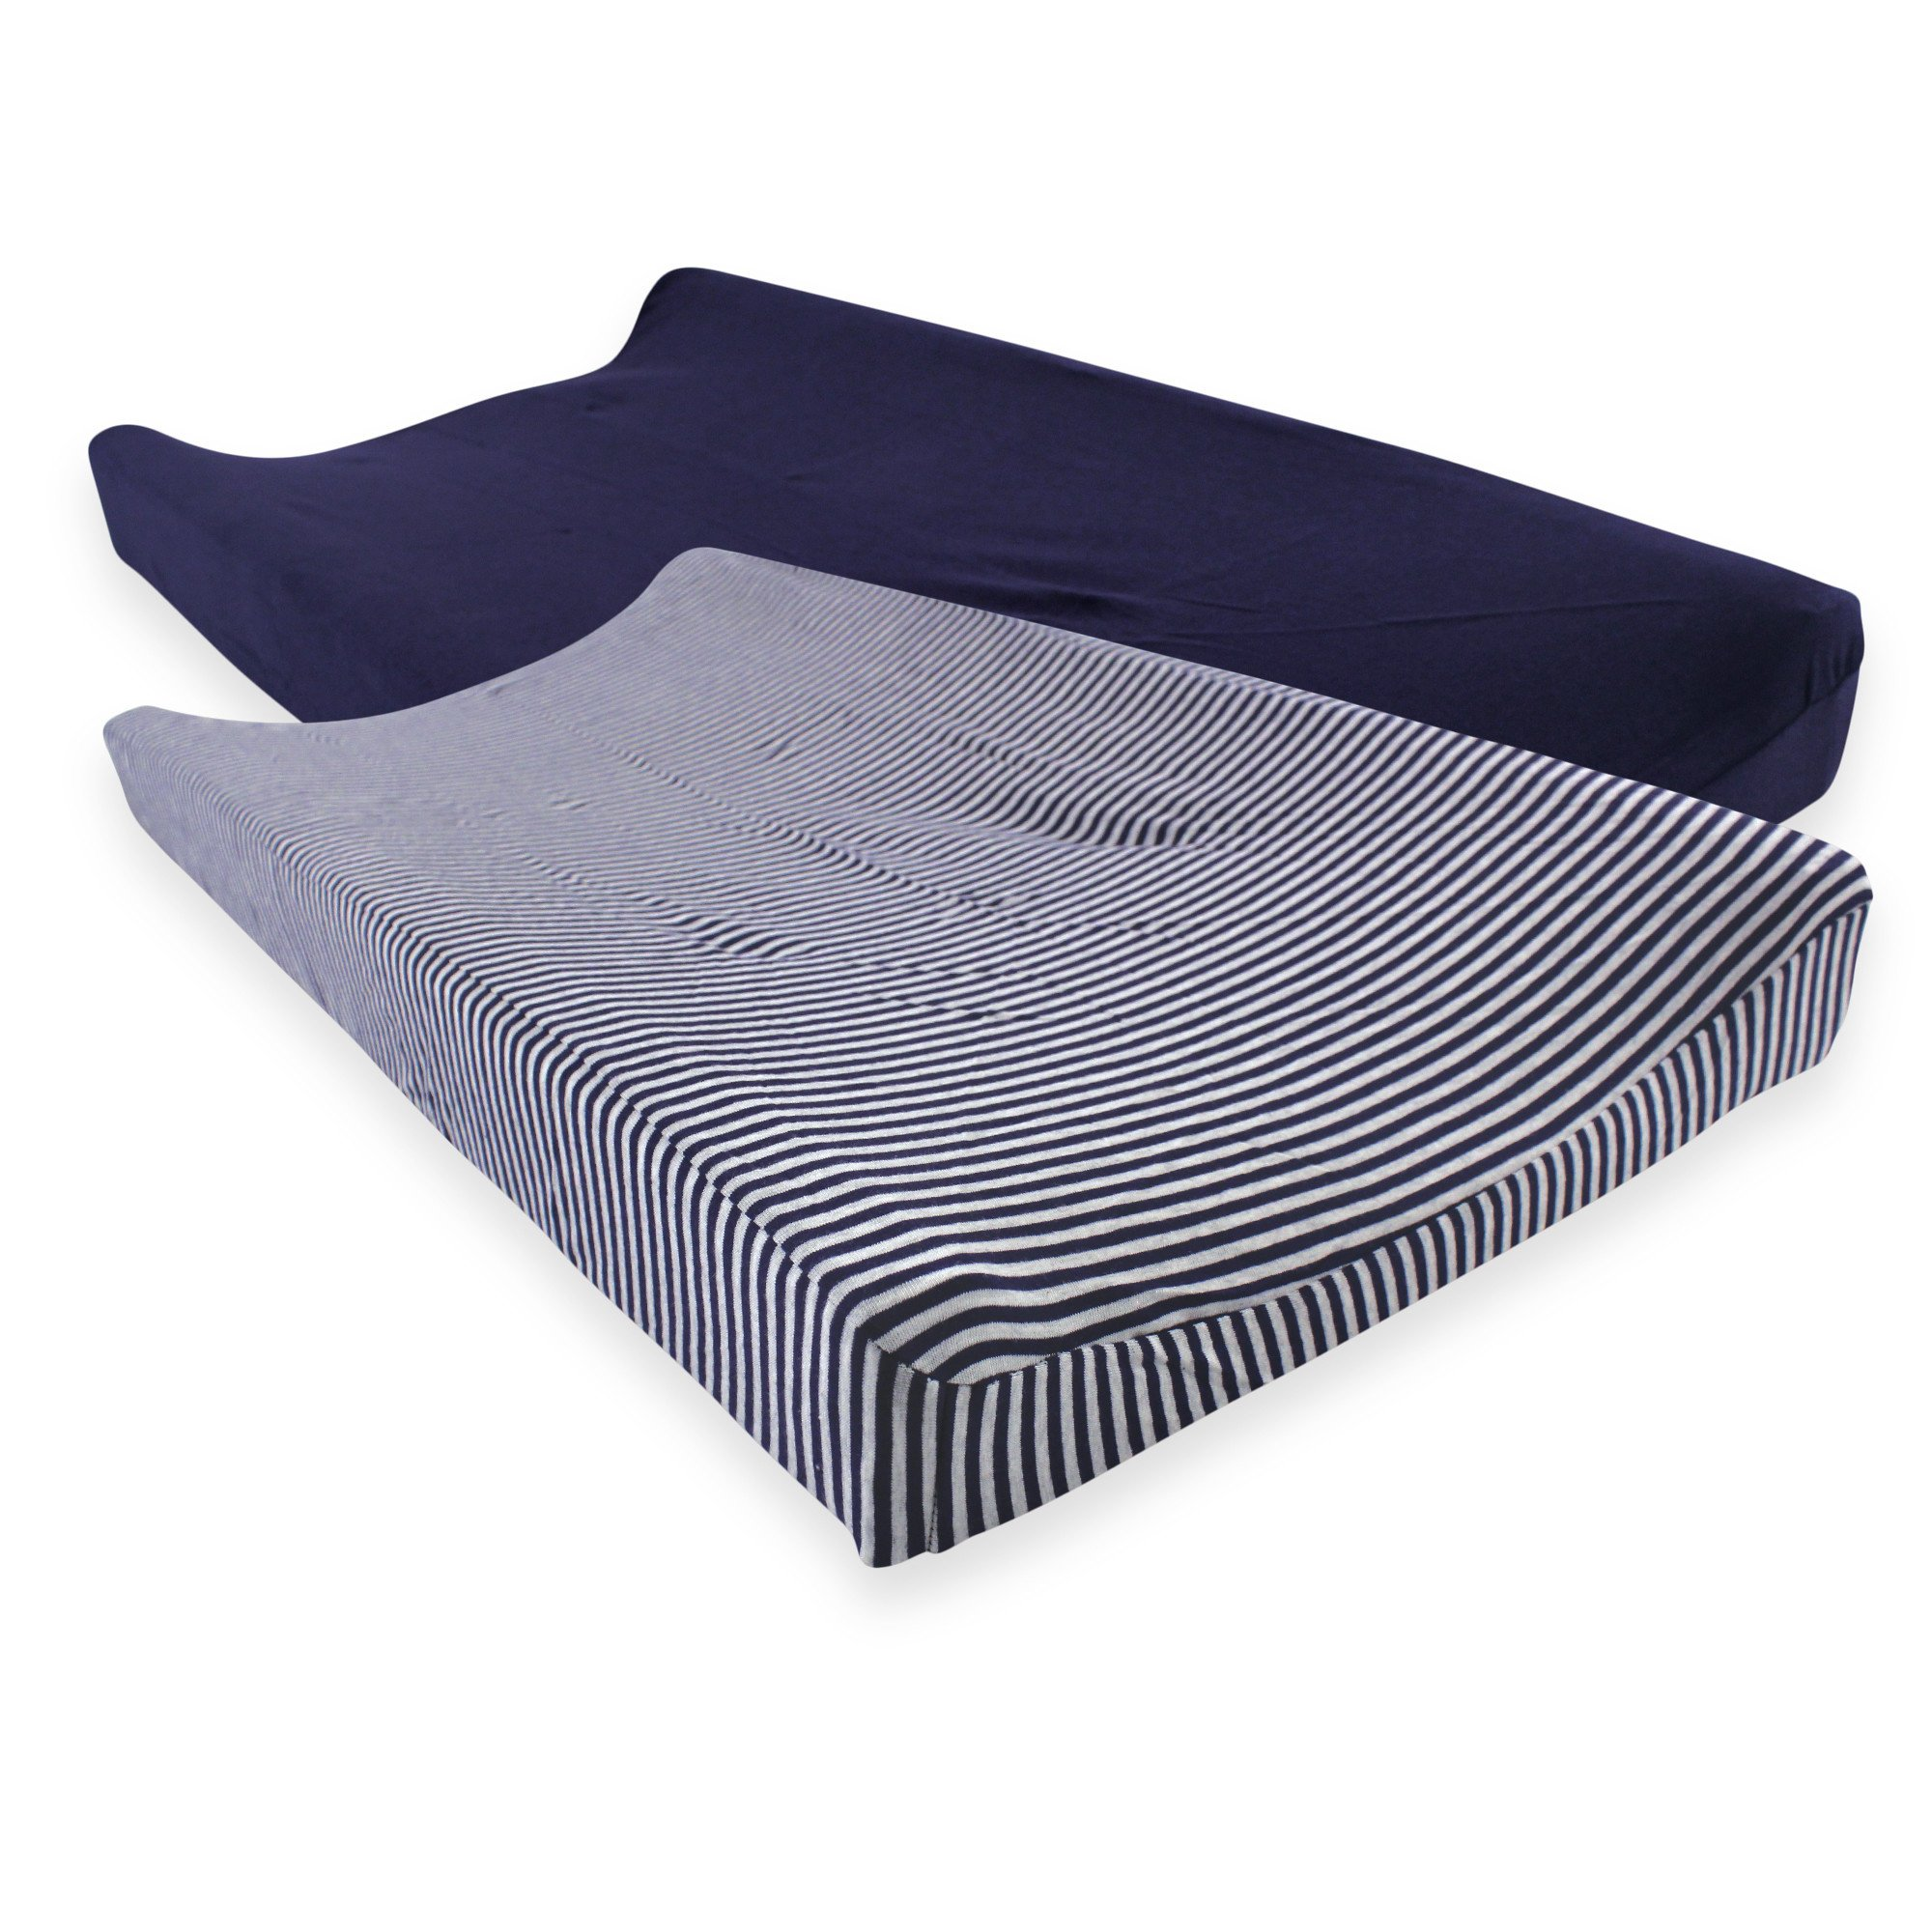 Touched by Nature Organic Cotton Changing Pad Cover, 2 Pack, Navy and Gray, One Size